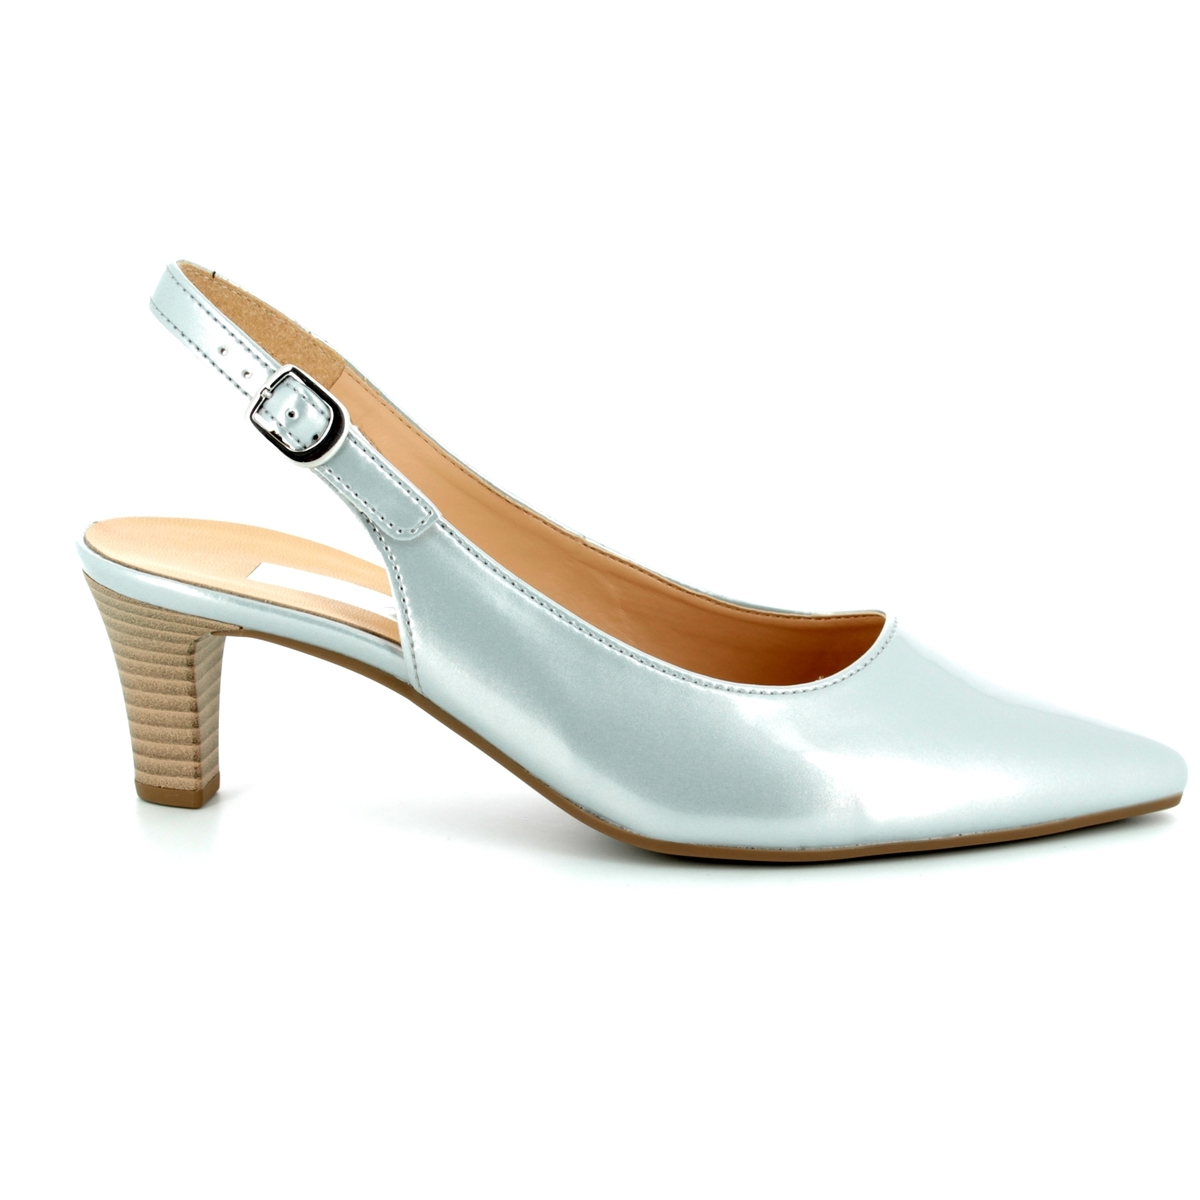 b7f12875eb8 Gabor High-heeled Shoes - Silver - 81.550.92 HUME 2